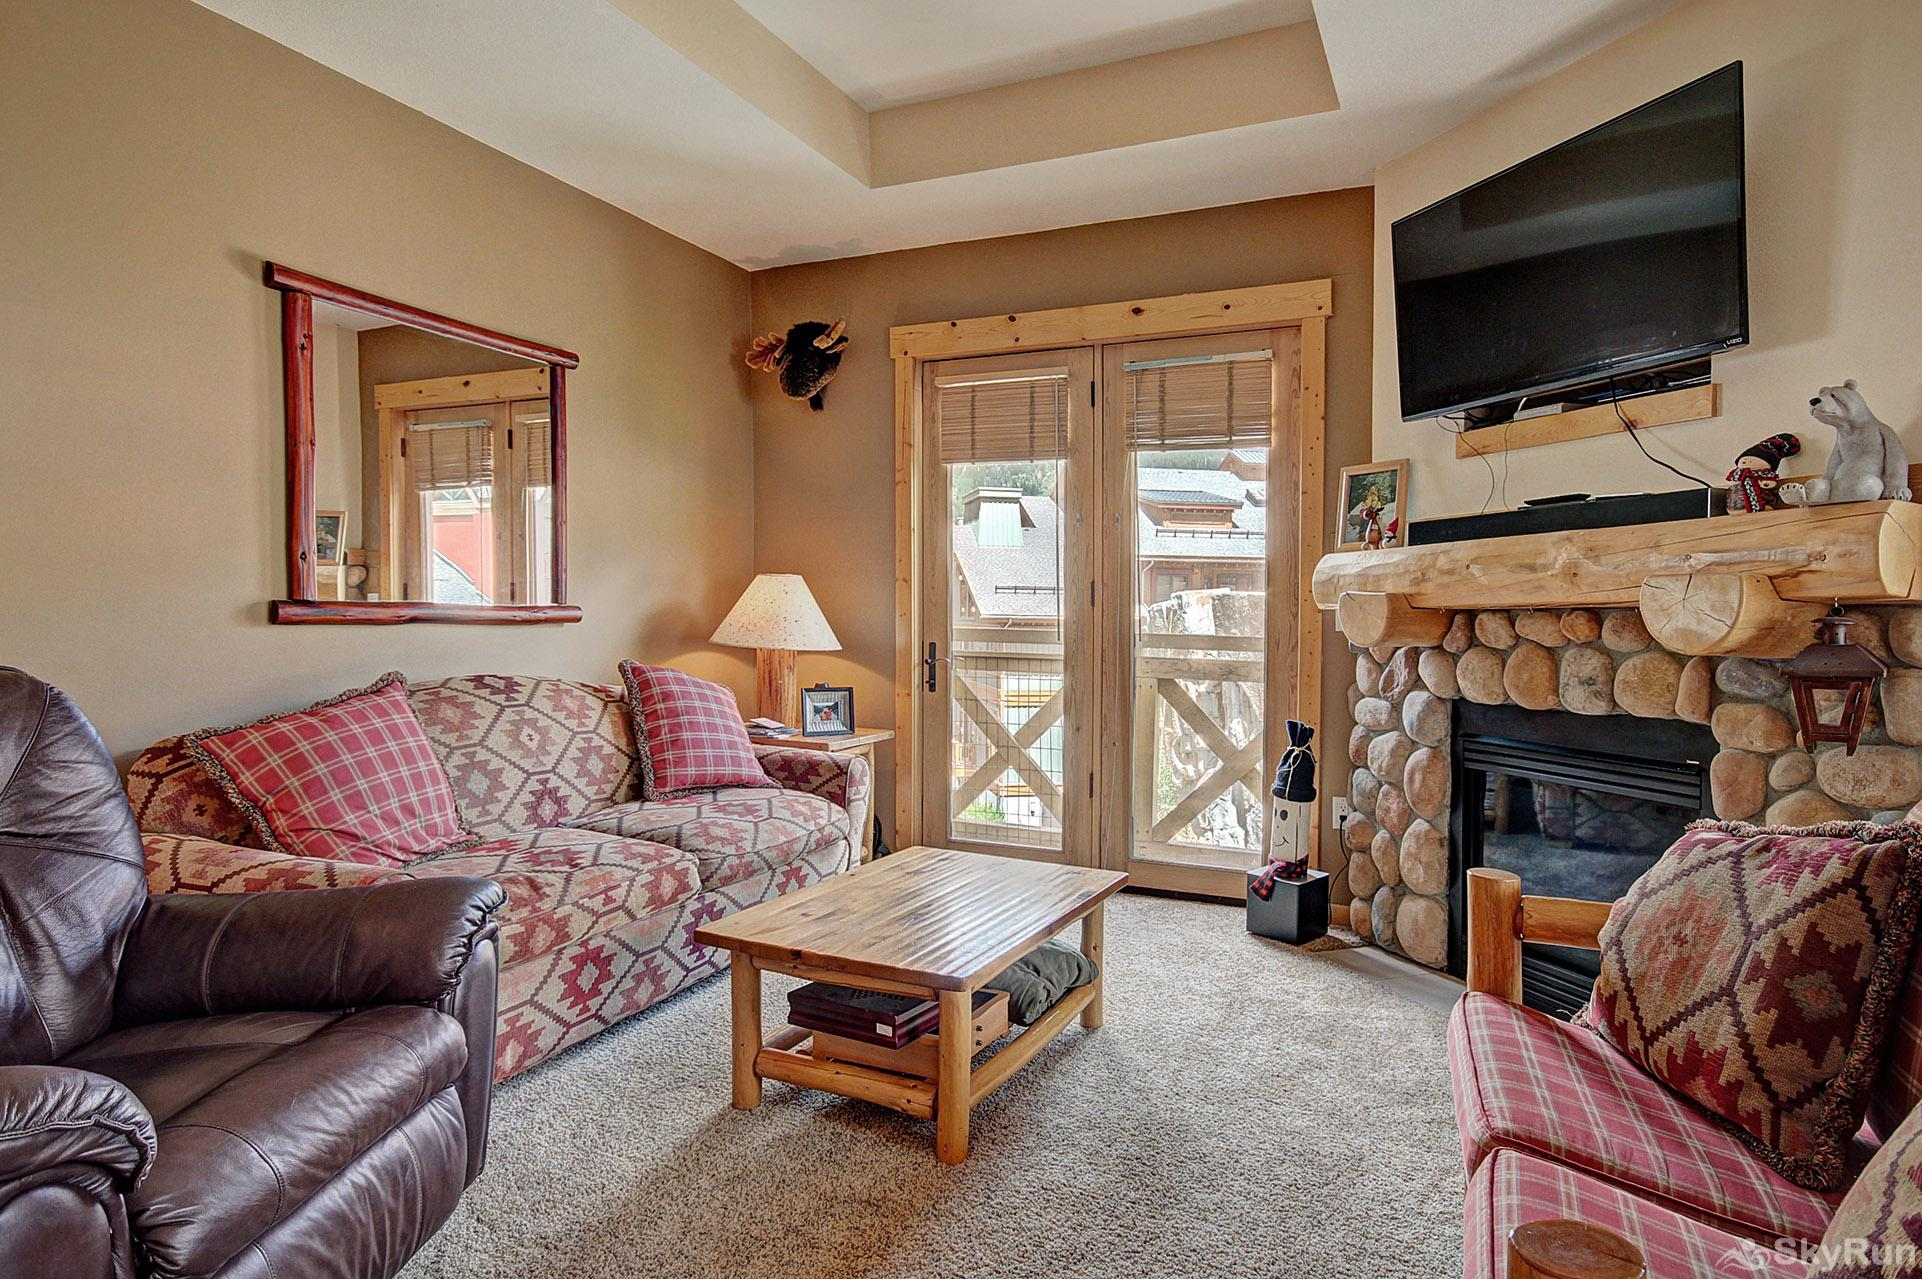 TM414 Tucker Mountain Relax in the Cozy Living Room